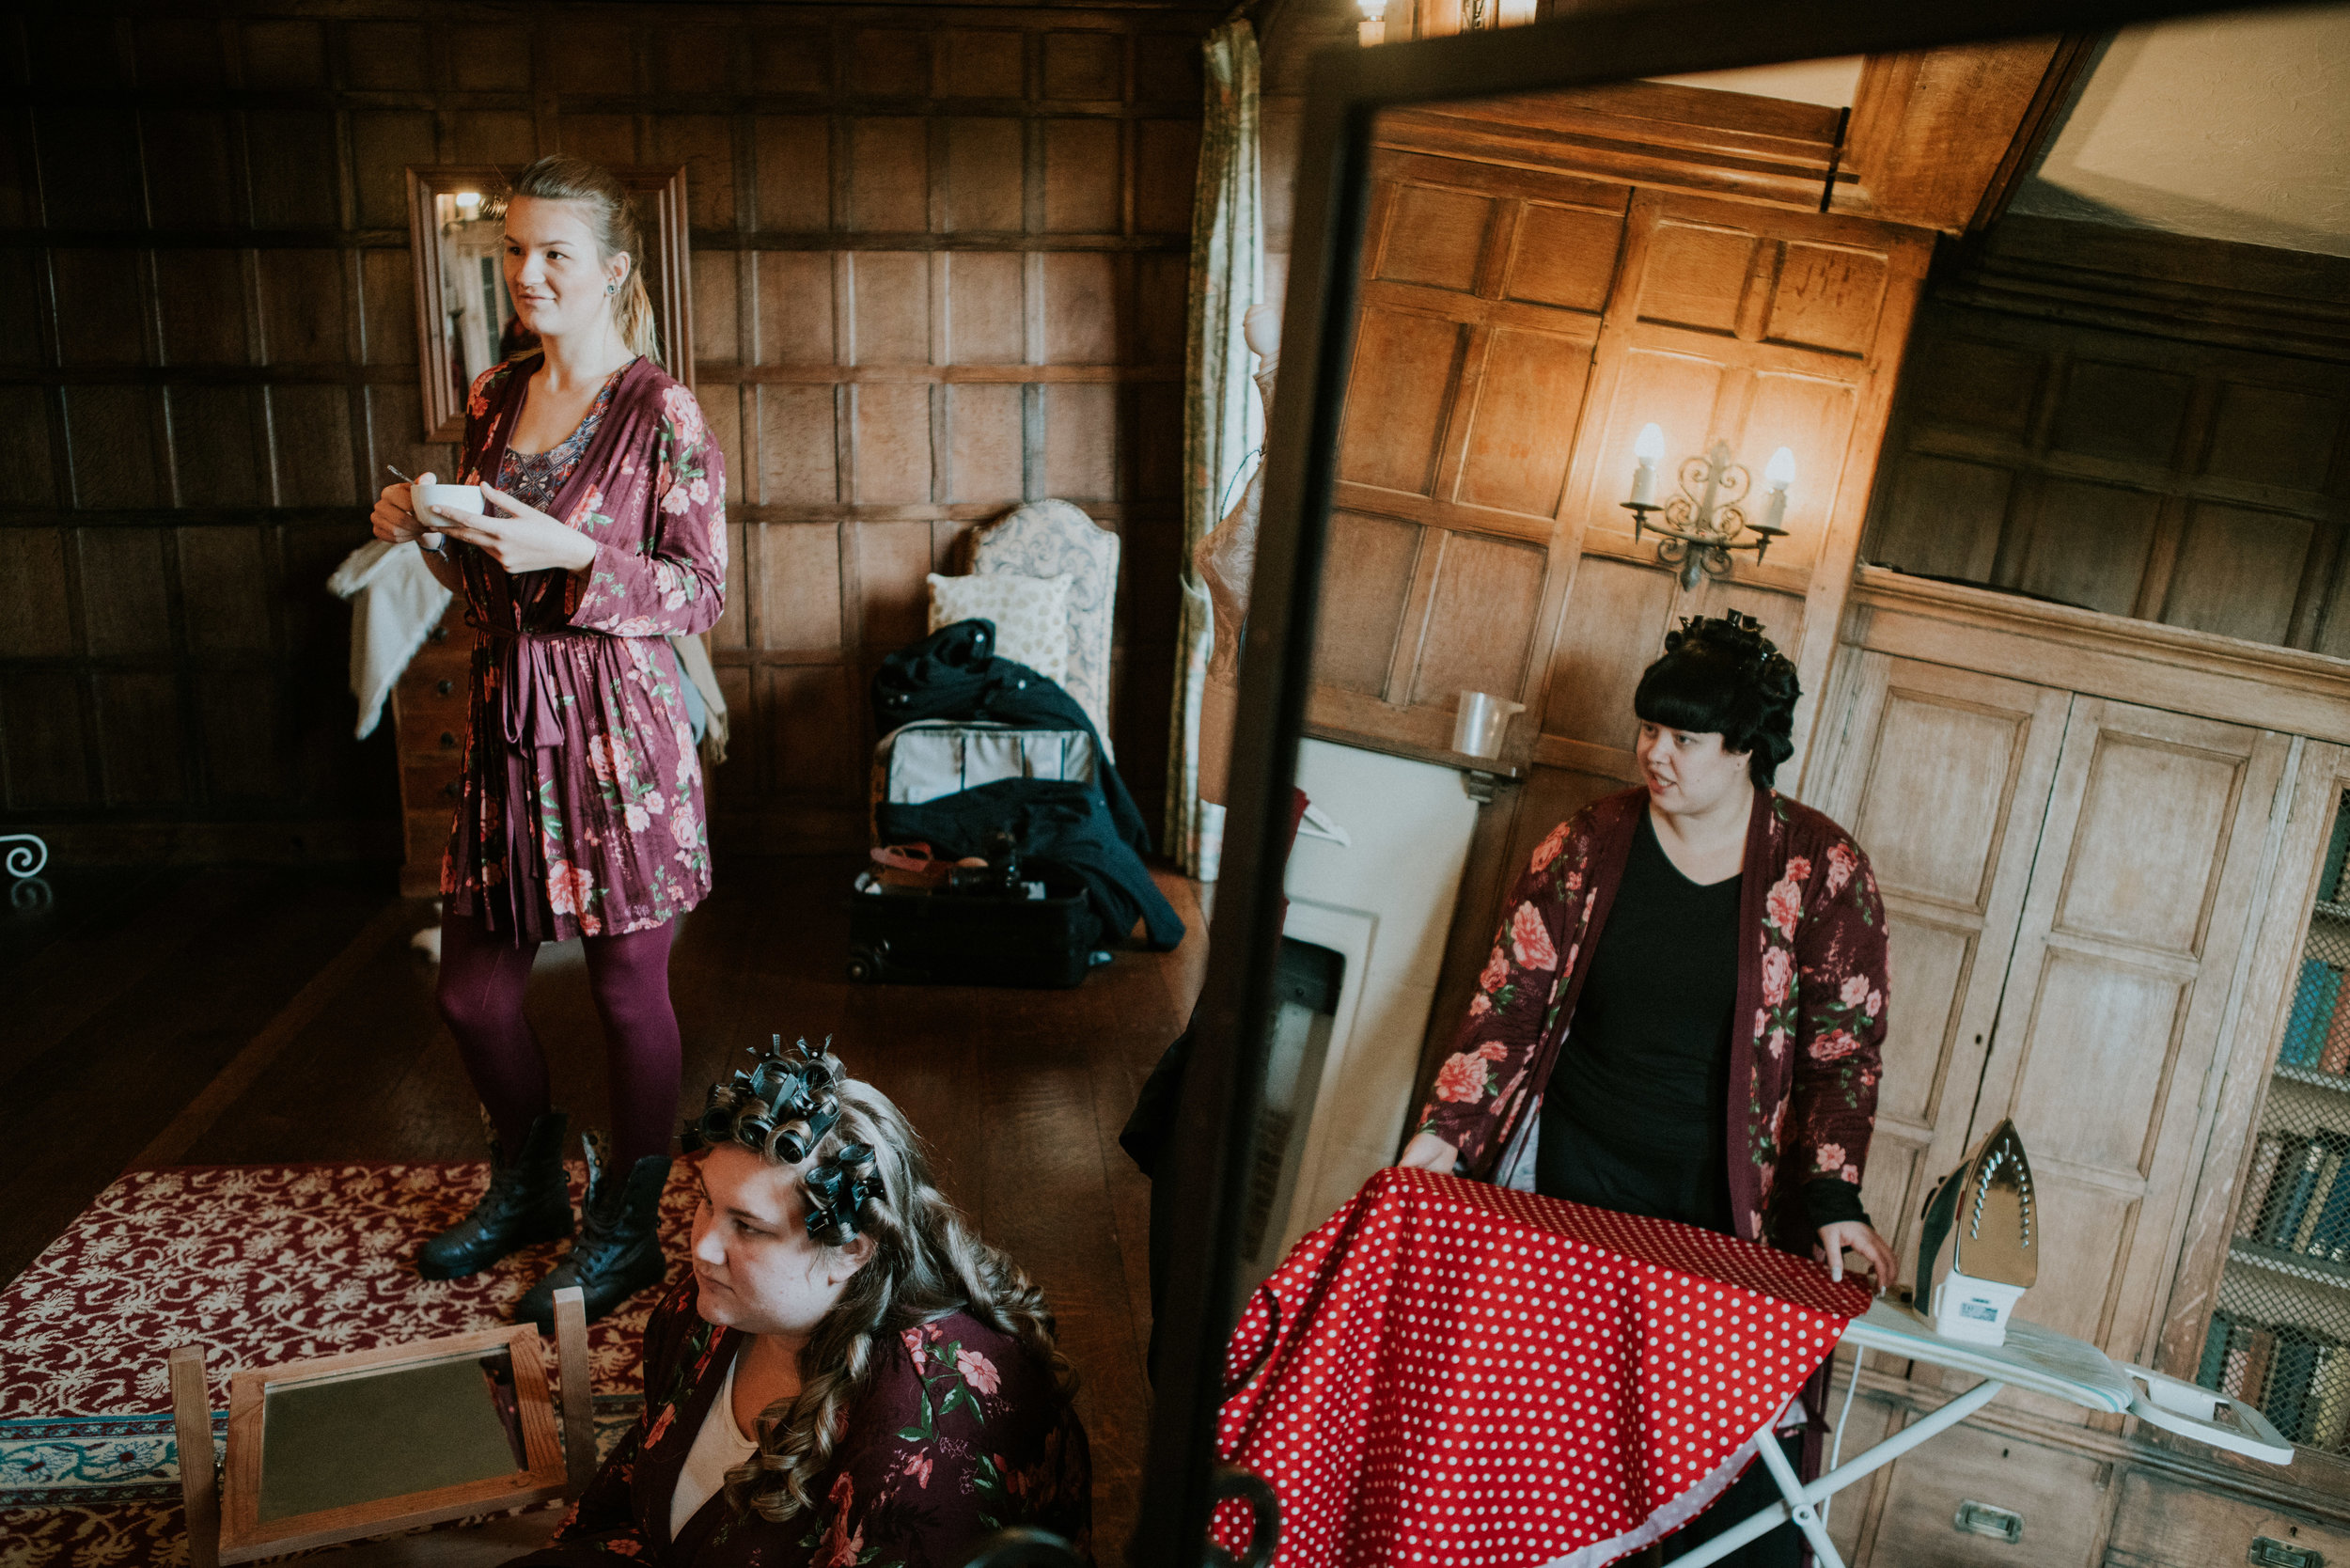 london-kent-wedding-photography-lympne-castle-bride-prep-04